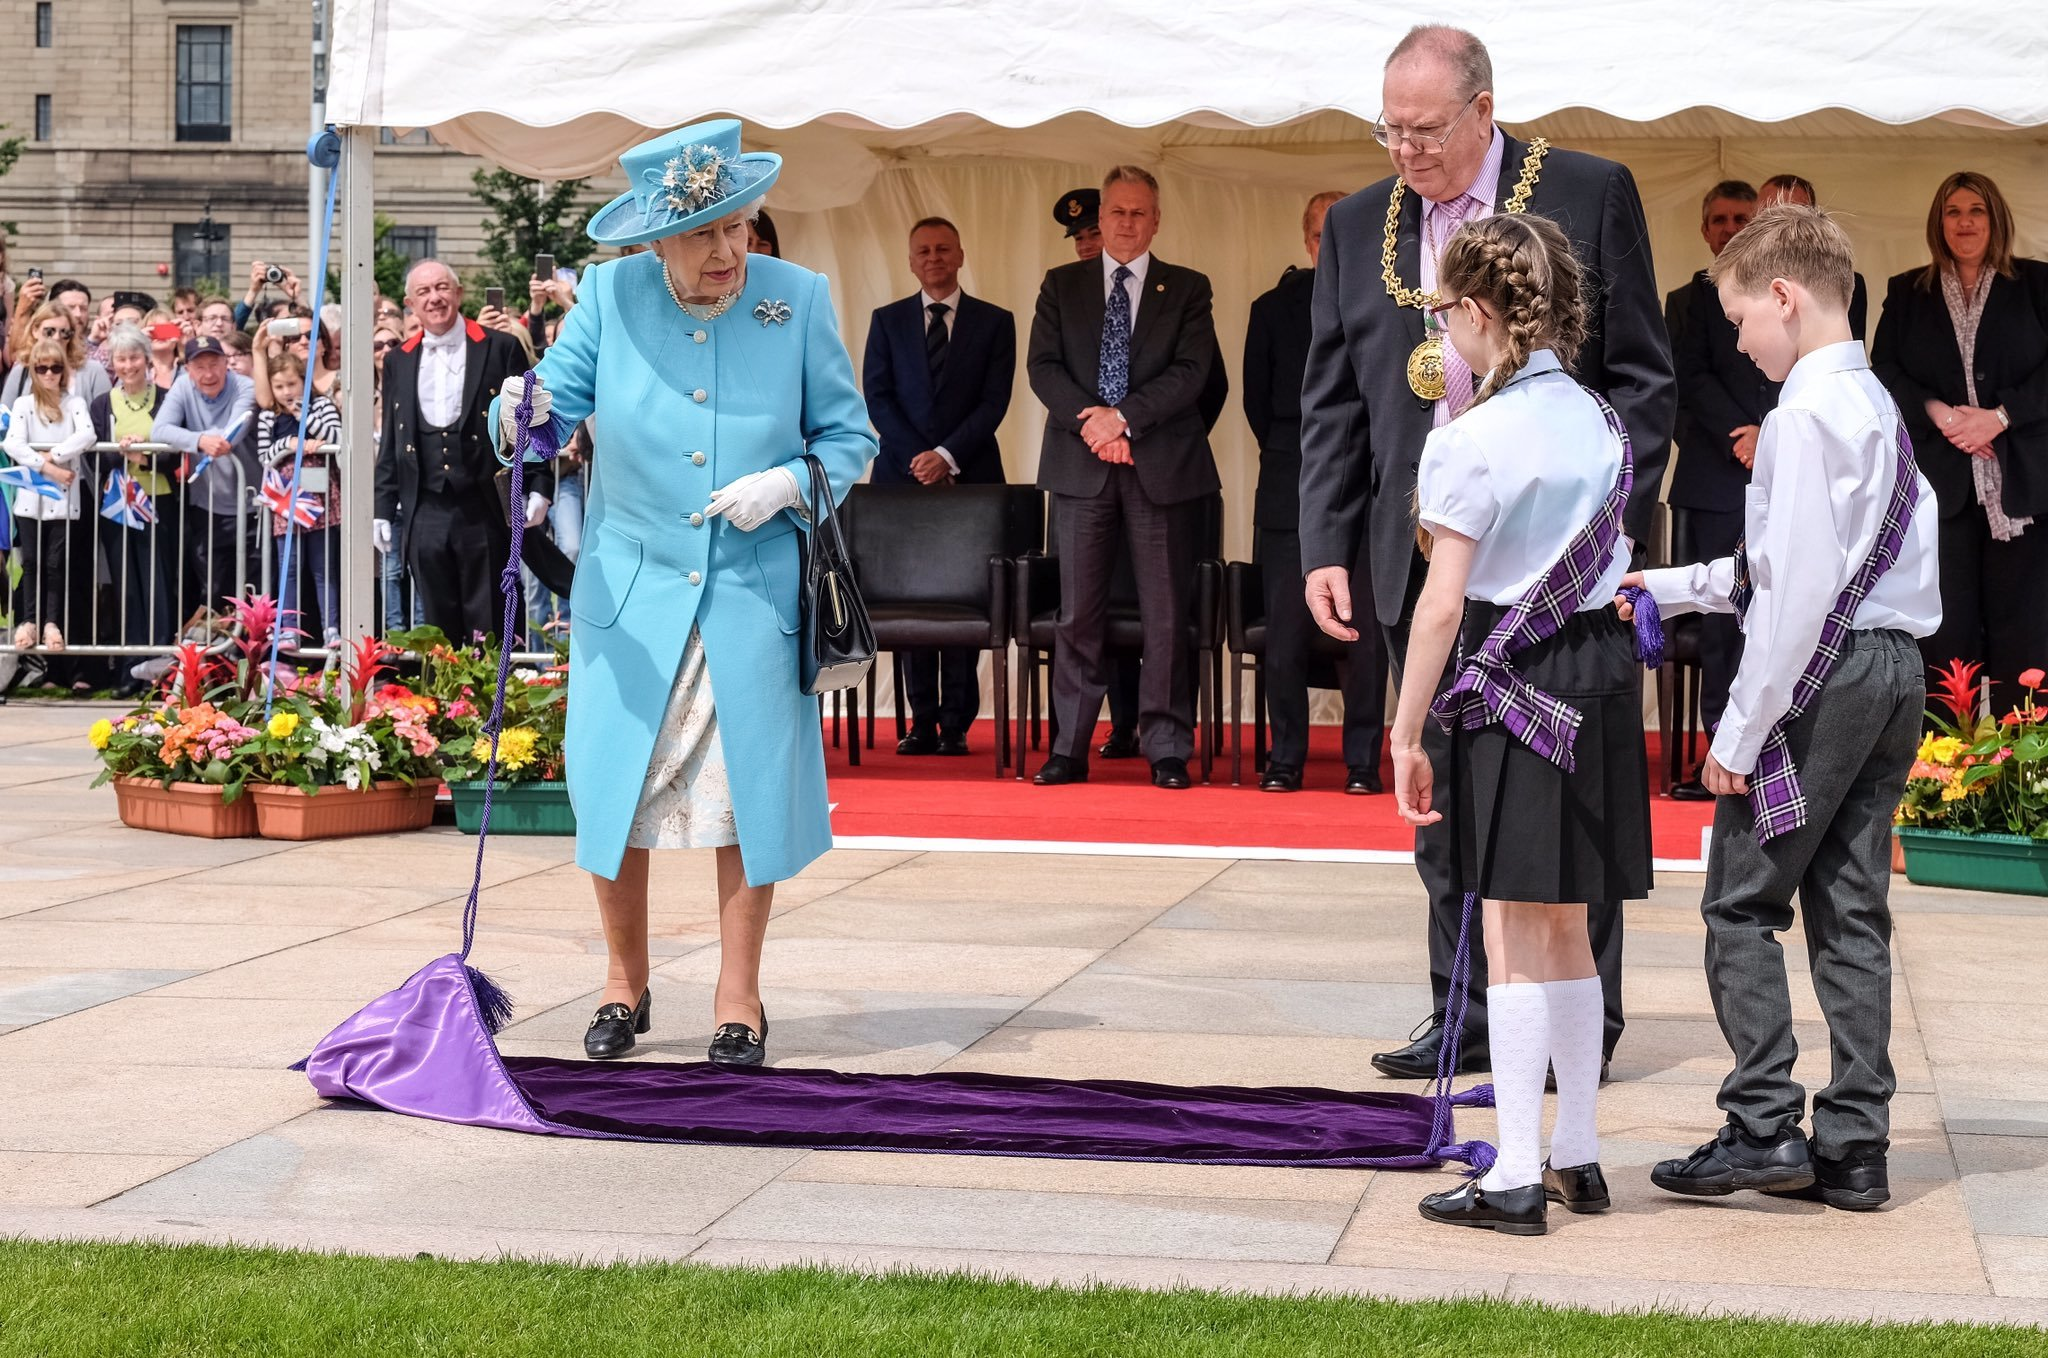 The Queen unveils a plaque at Slessor Gardens.